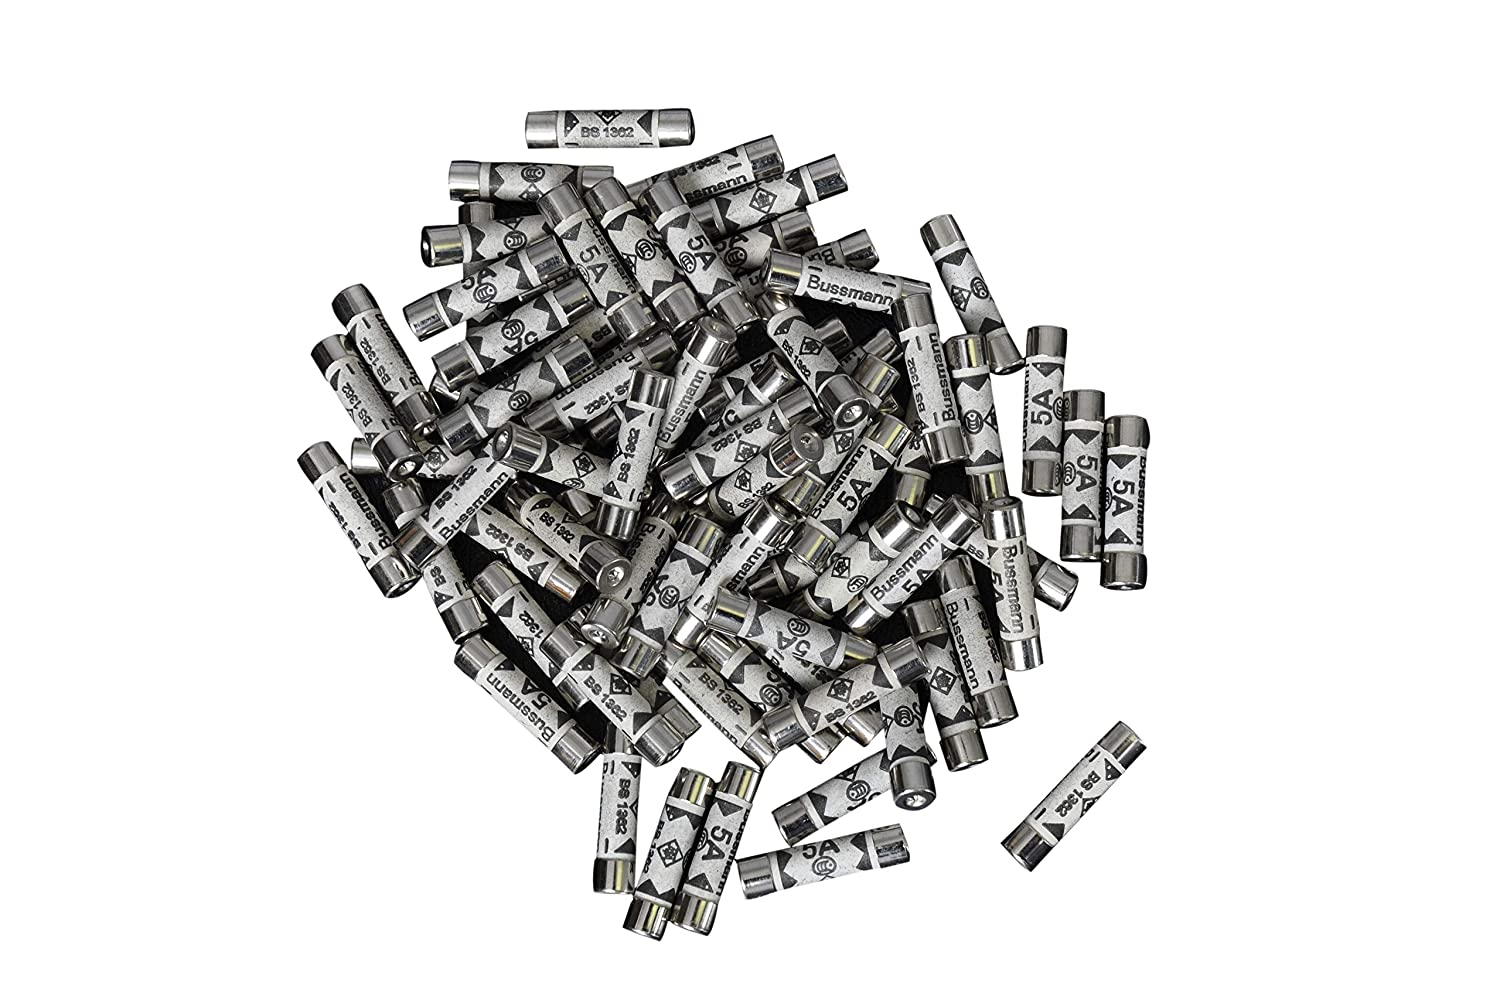 Tech Traders 5AMP Domestic Plug Top Household Mains 5A Cartridge Fuse, Silver, Set of 100 Pieces MEERO Ltd 5AMP-FUSE